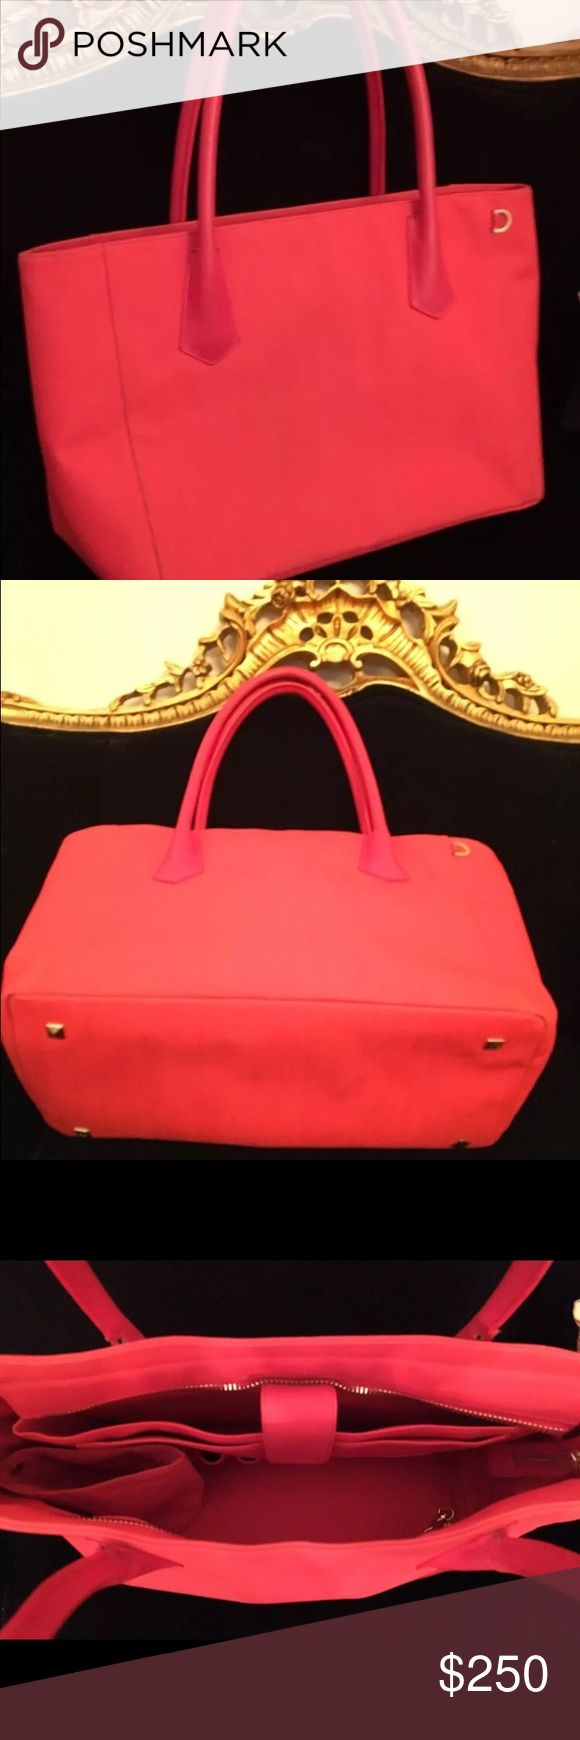 """Rare LTD Edition DAGNE Dover Vermillion 15"""" Tote RARE NO LONGER PRODUCED DAGNE DOVER 15"""" TOTE IN VERMILLION (red coral) Bells & whistles w padded compartment for 15"""" laptops/Tablets Pockets sized specifically for your wallet, Phone. 15"""" L x 7"""" W x 12"""" H   8.5""""  ALTHOUGH THE BAG IS NEW & HAS NEVER BEEN USED...THERE IS SOME CRACKING ALONG THE INNER PIPING OF HANDLES AND WHERE HANDLES MEET THE BAG.  I'M QUITE CERTAIN A SHOE REPAIR COULD EASILY FIX THE ISSUE.  UNLESS ONE LOOKED VERY CLOSELY THEY…"""